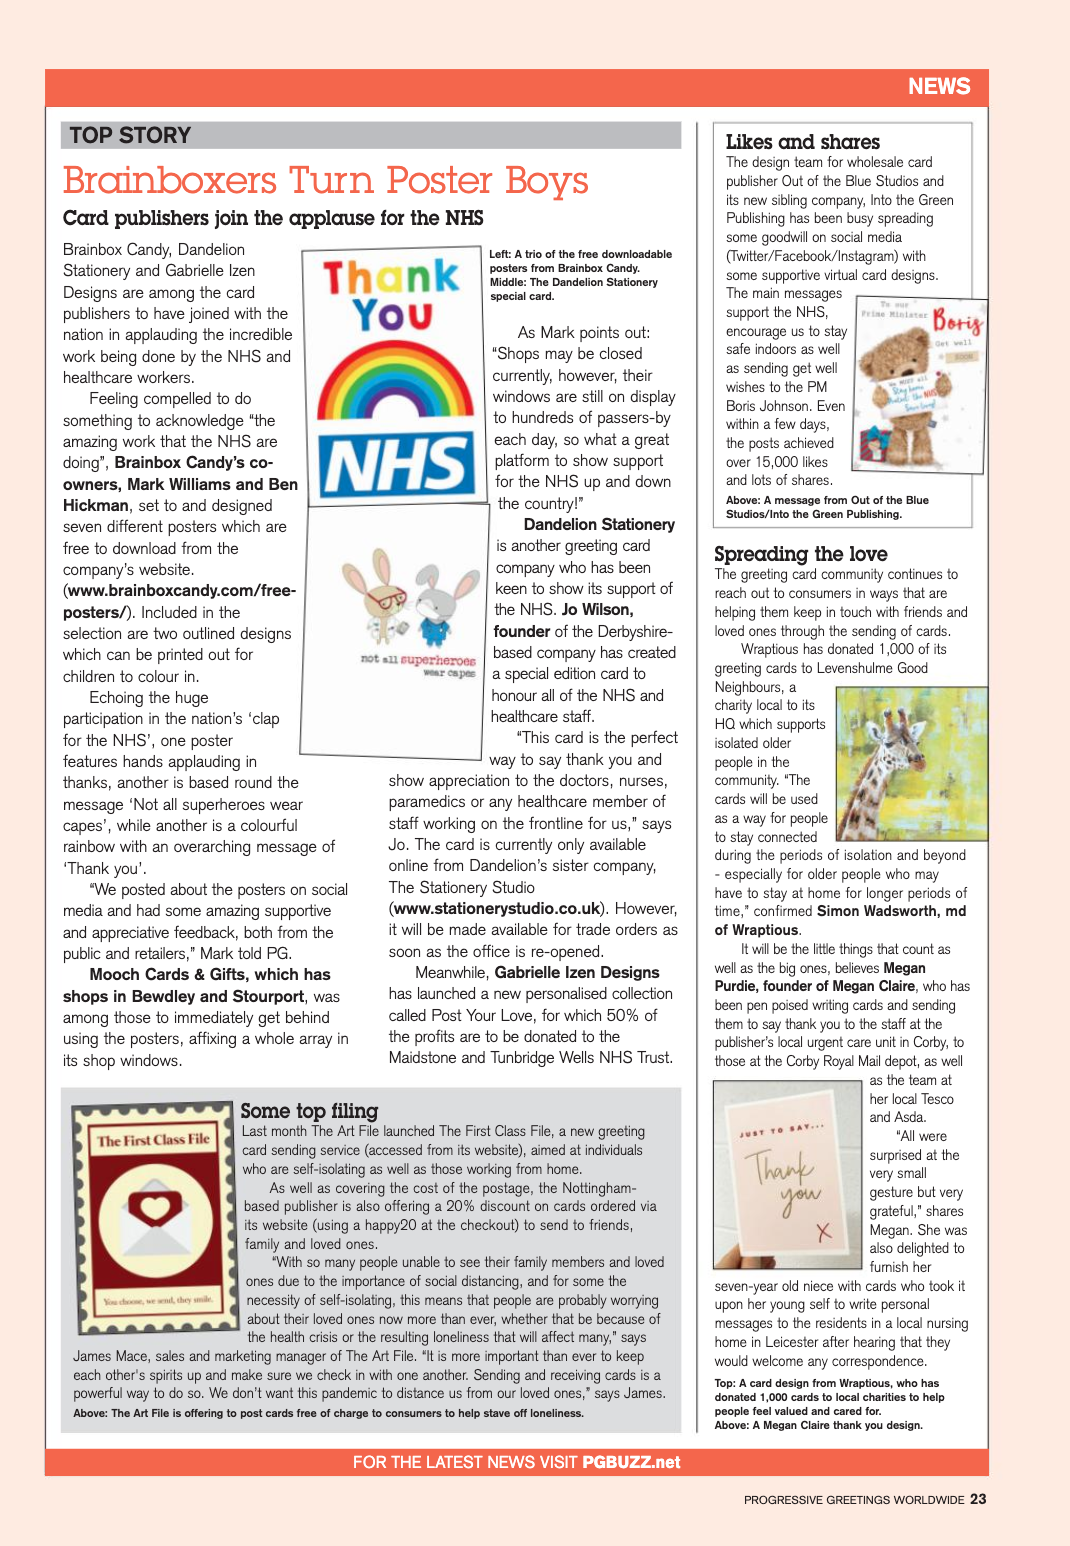 Above: So many publishers have come out with ways of showing support to the NHS.